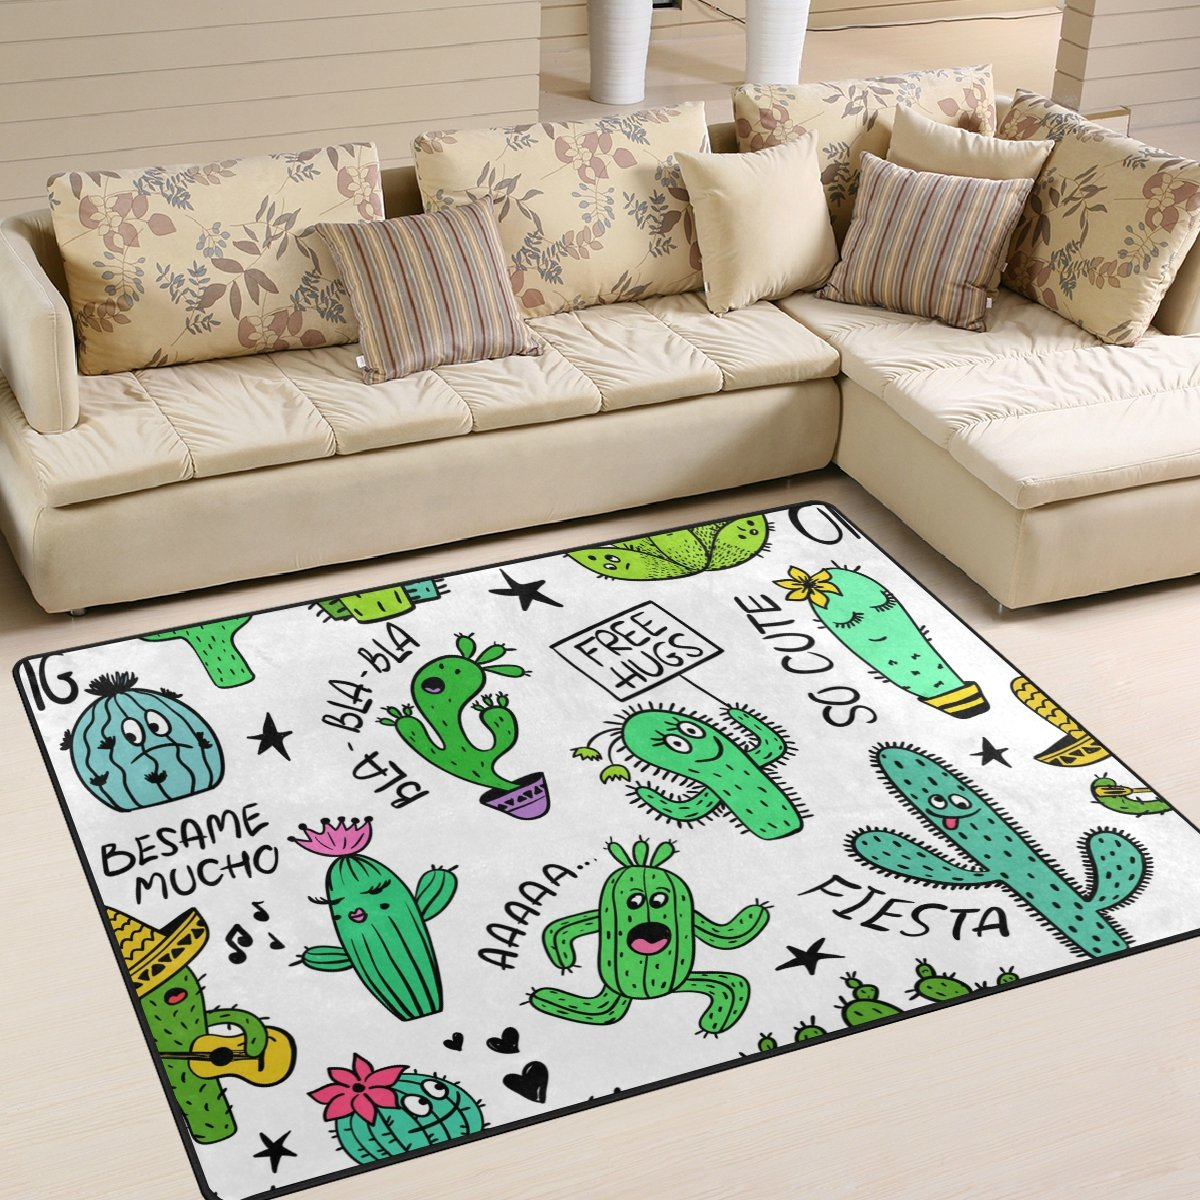 ALAZA Funny Cartoon Cactus Succulent Plant Kids Area Rug, Non-Slip Floor Mat Soft Resting Area Doormats for Living Dining Bedroom 5' x 7'